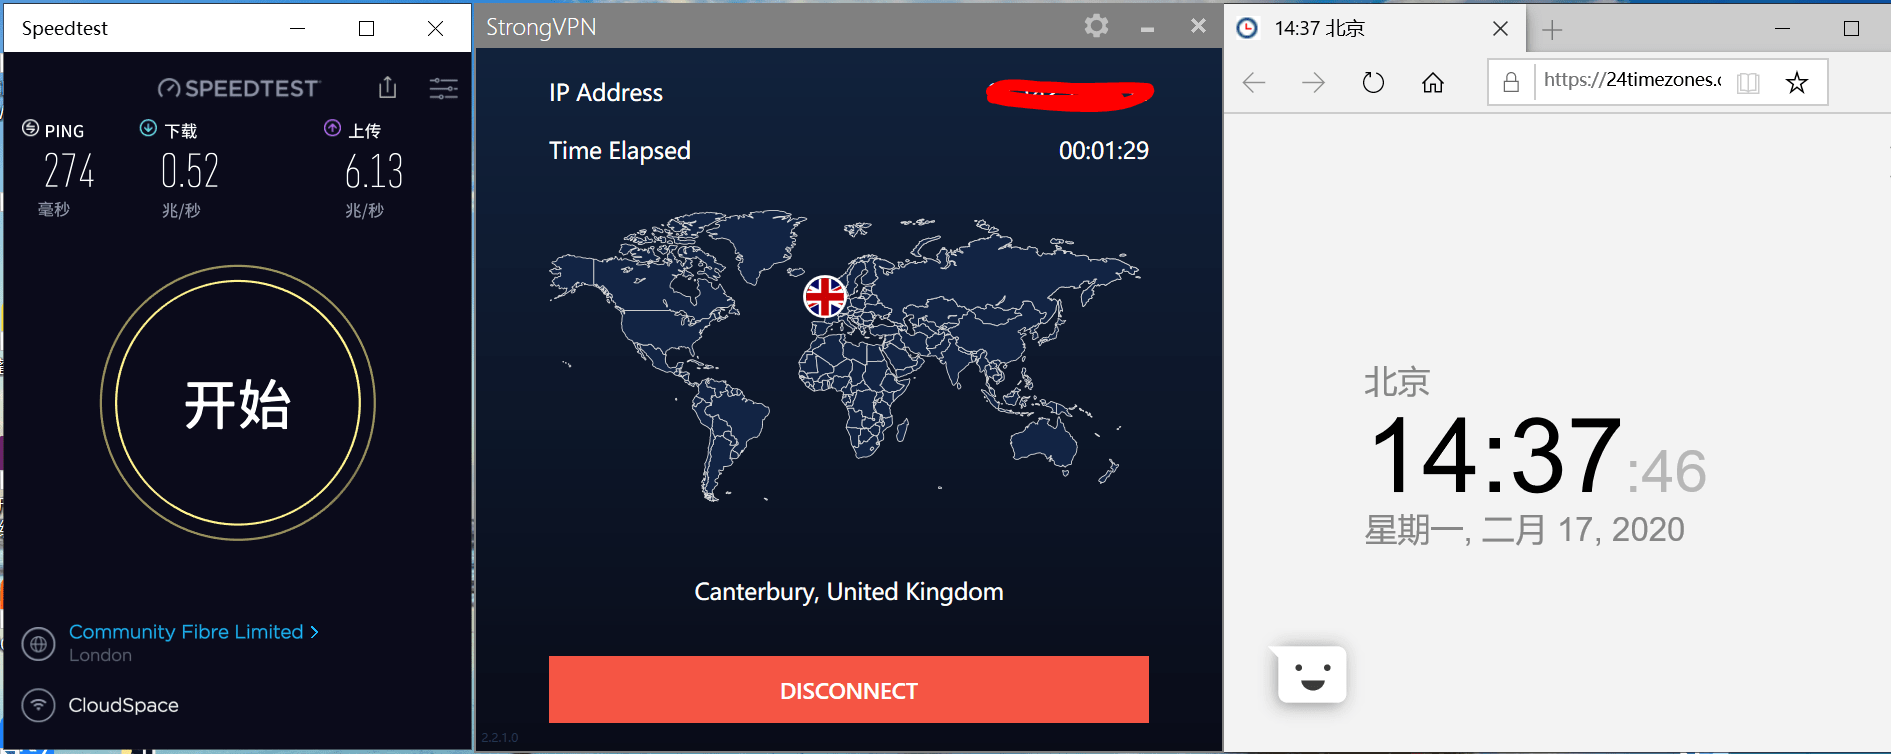 Windows10 StrongVPN Canterbury - United Kingdom 中国VPN翻墙 科学上网 SpeedTest测试-20200217